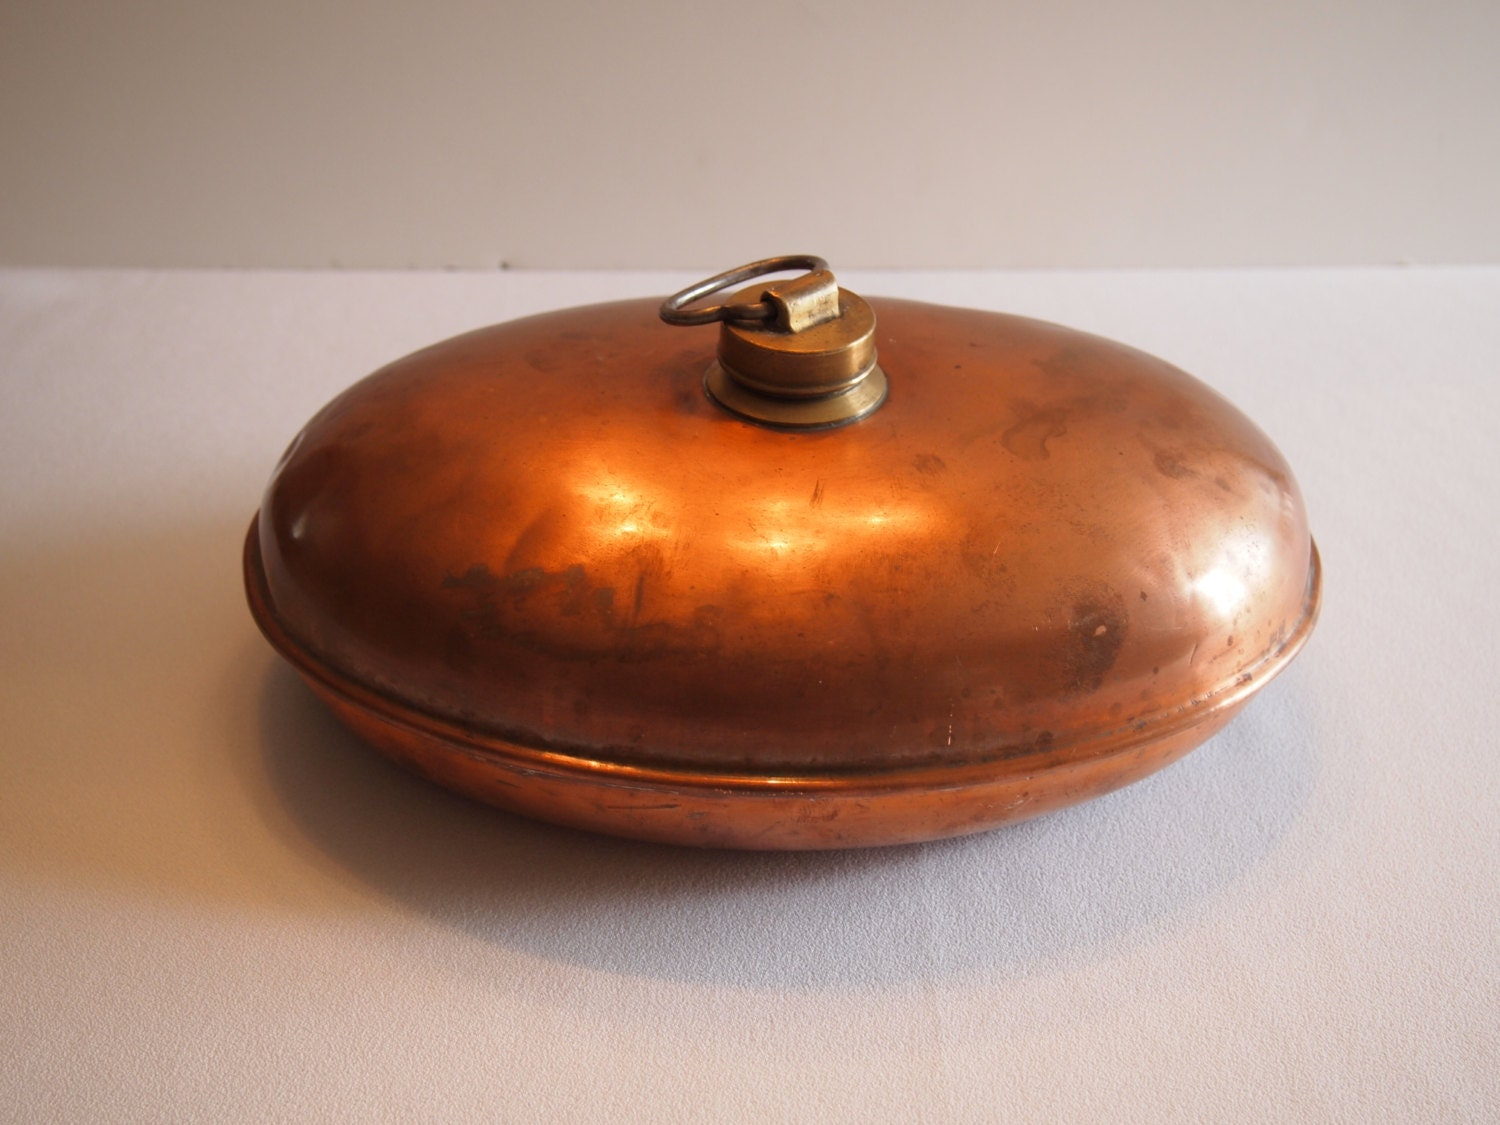 Antique Bed Warmer 28 Images Item No Longer Available